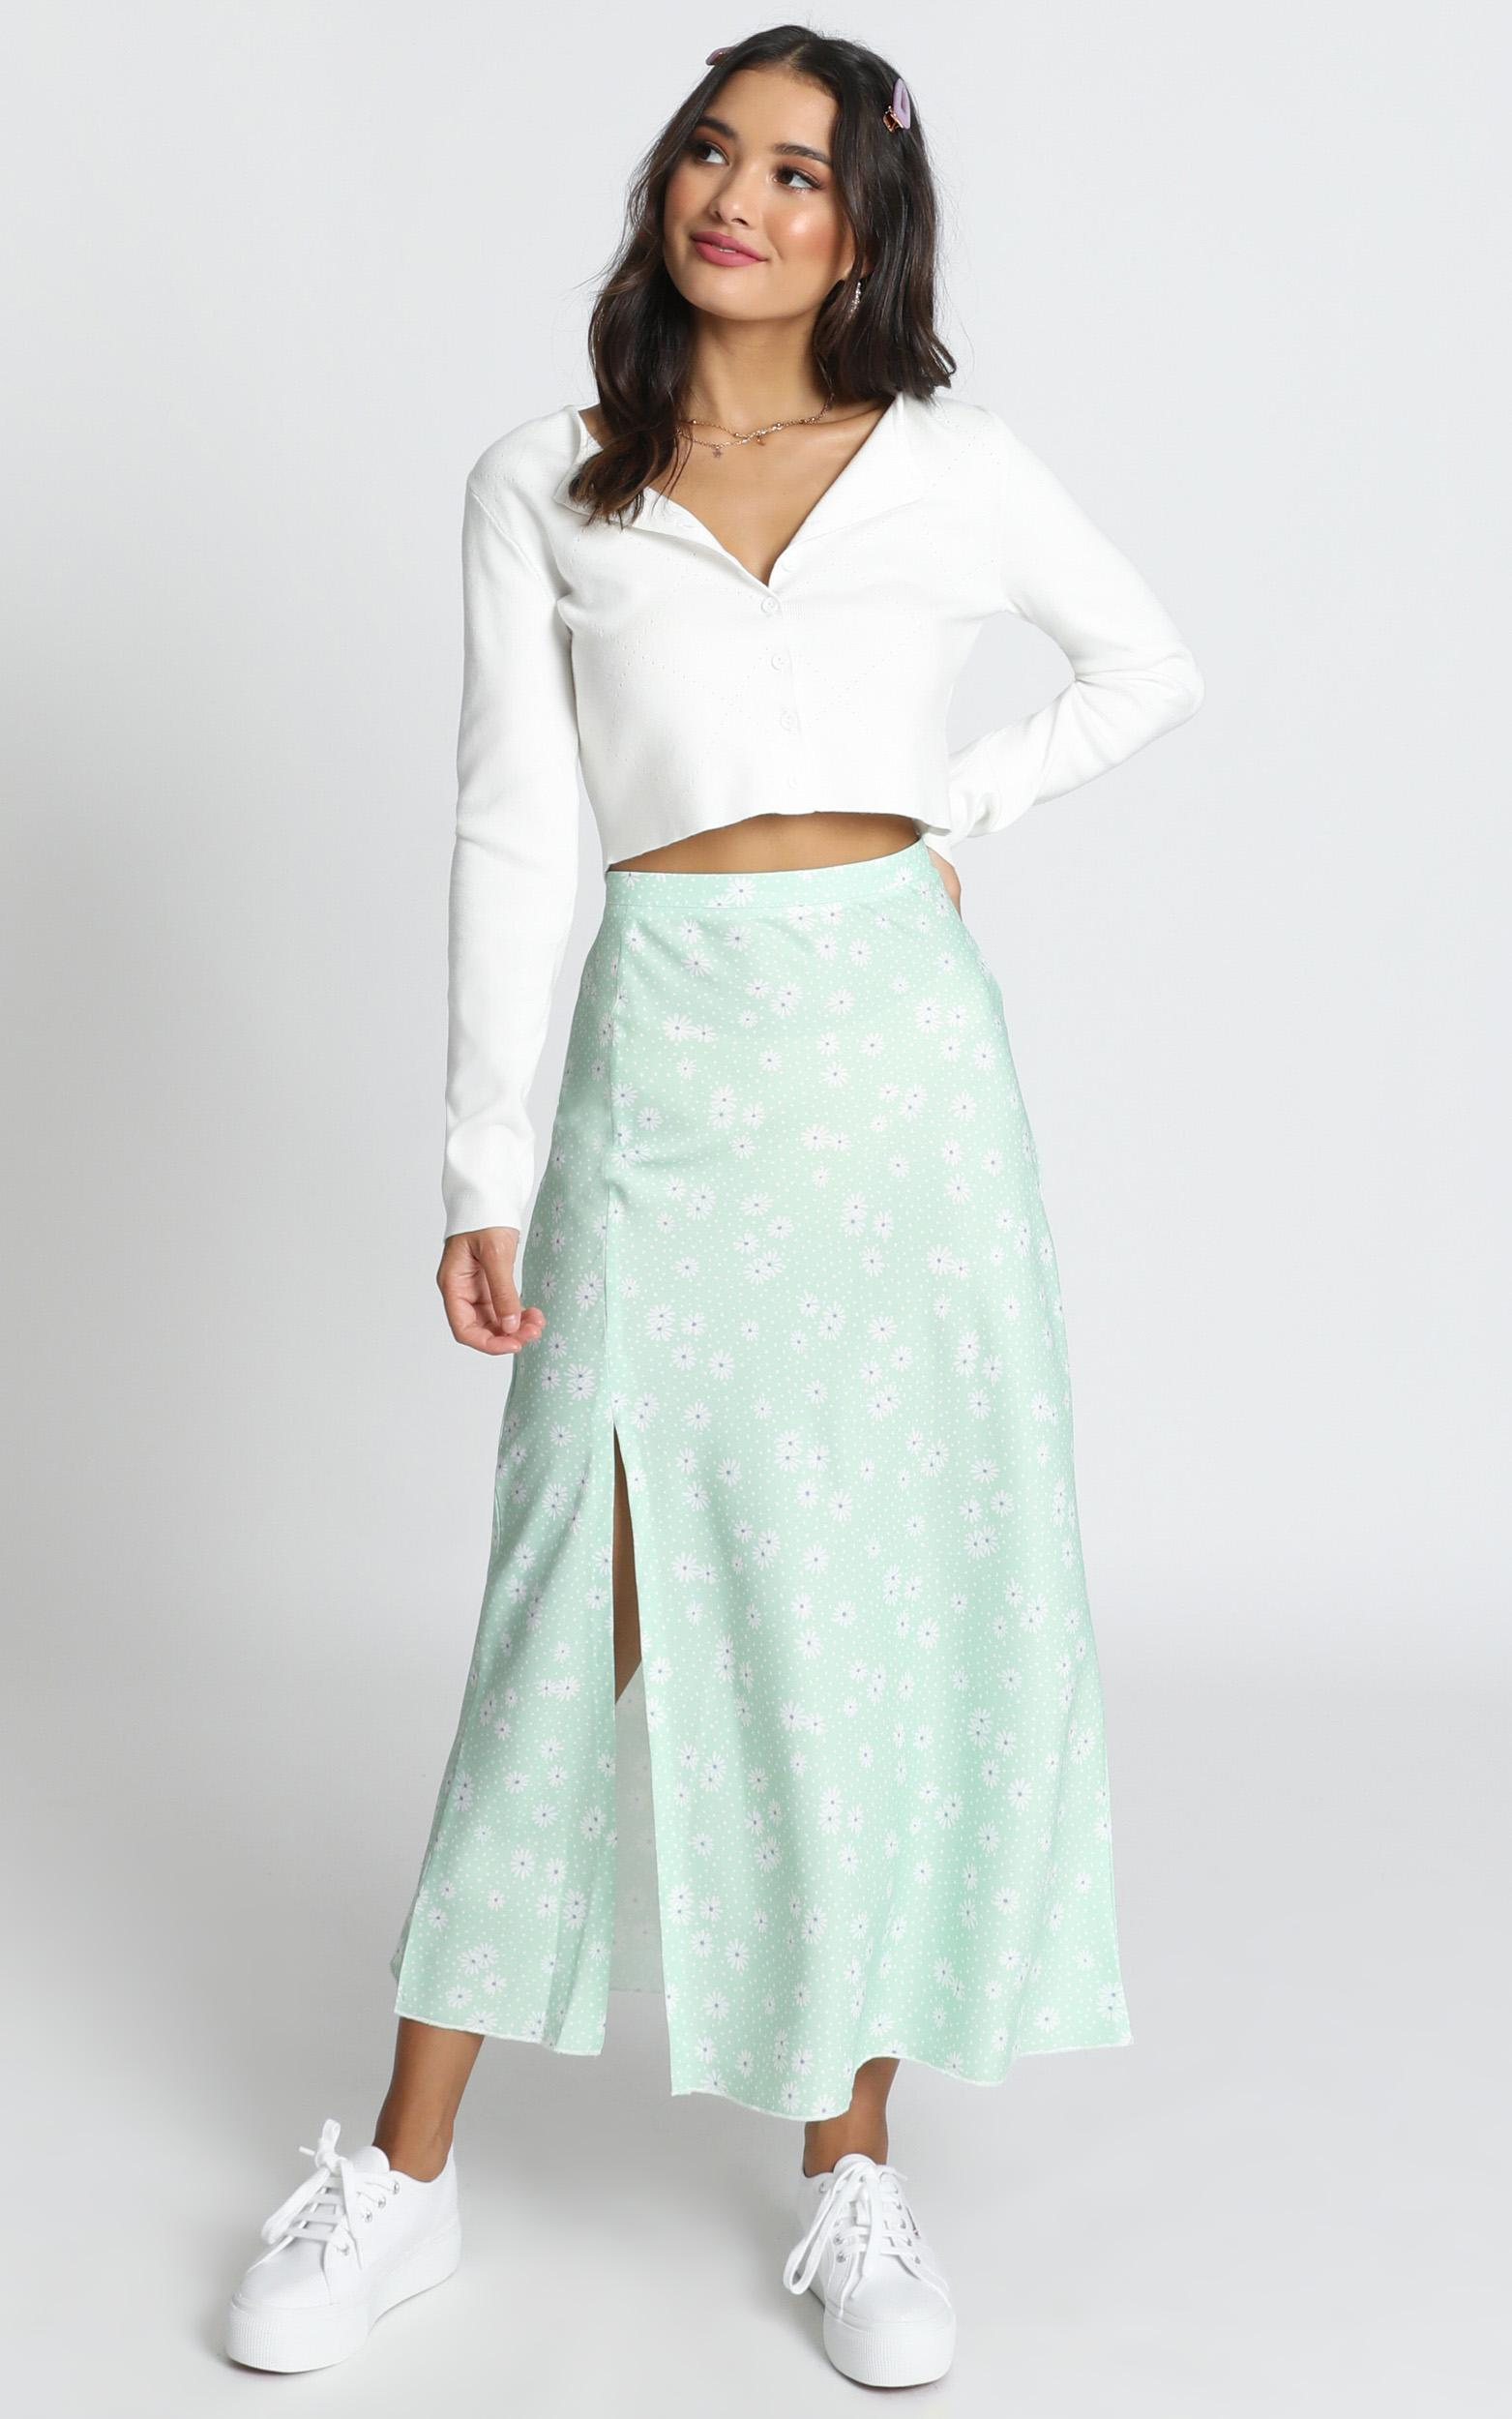 New Ways Skirt in mint floral - 12 (L), Green, hi-res image number null